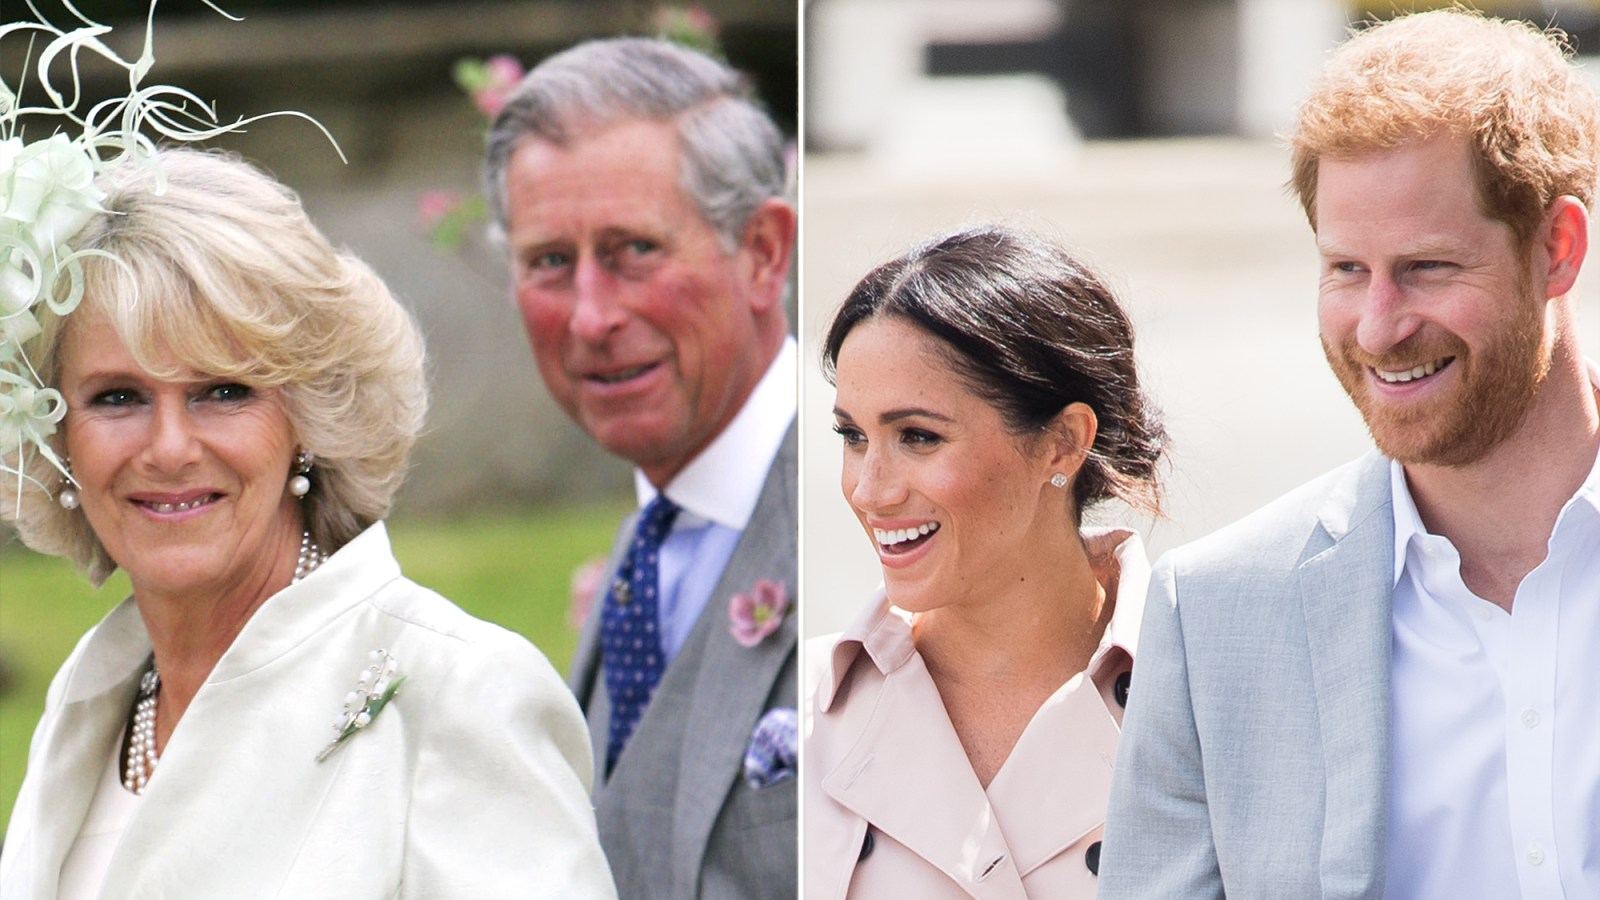 Prince Charles and Duchess Camilla 'Couldn't Be More Delighted' About Baby Sussex's Arrival